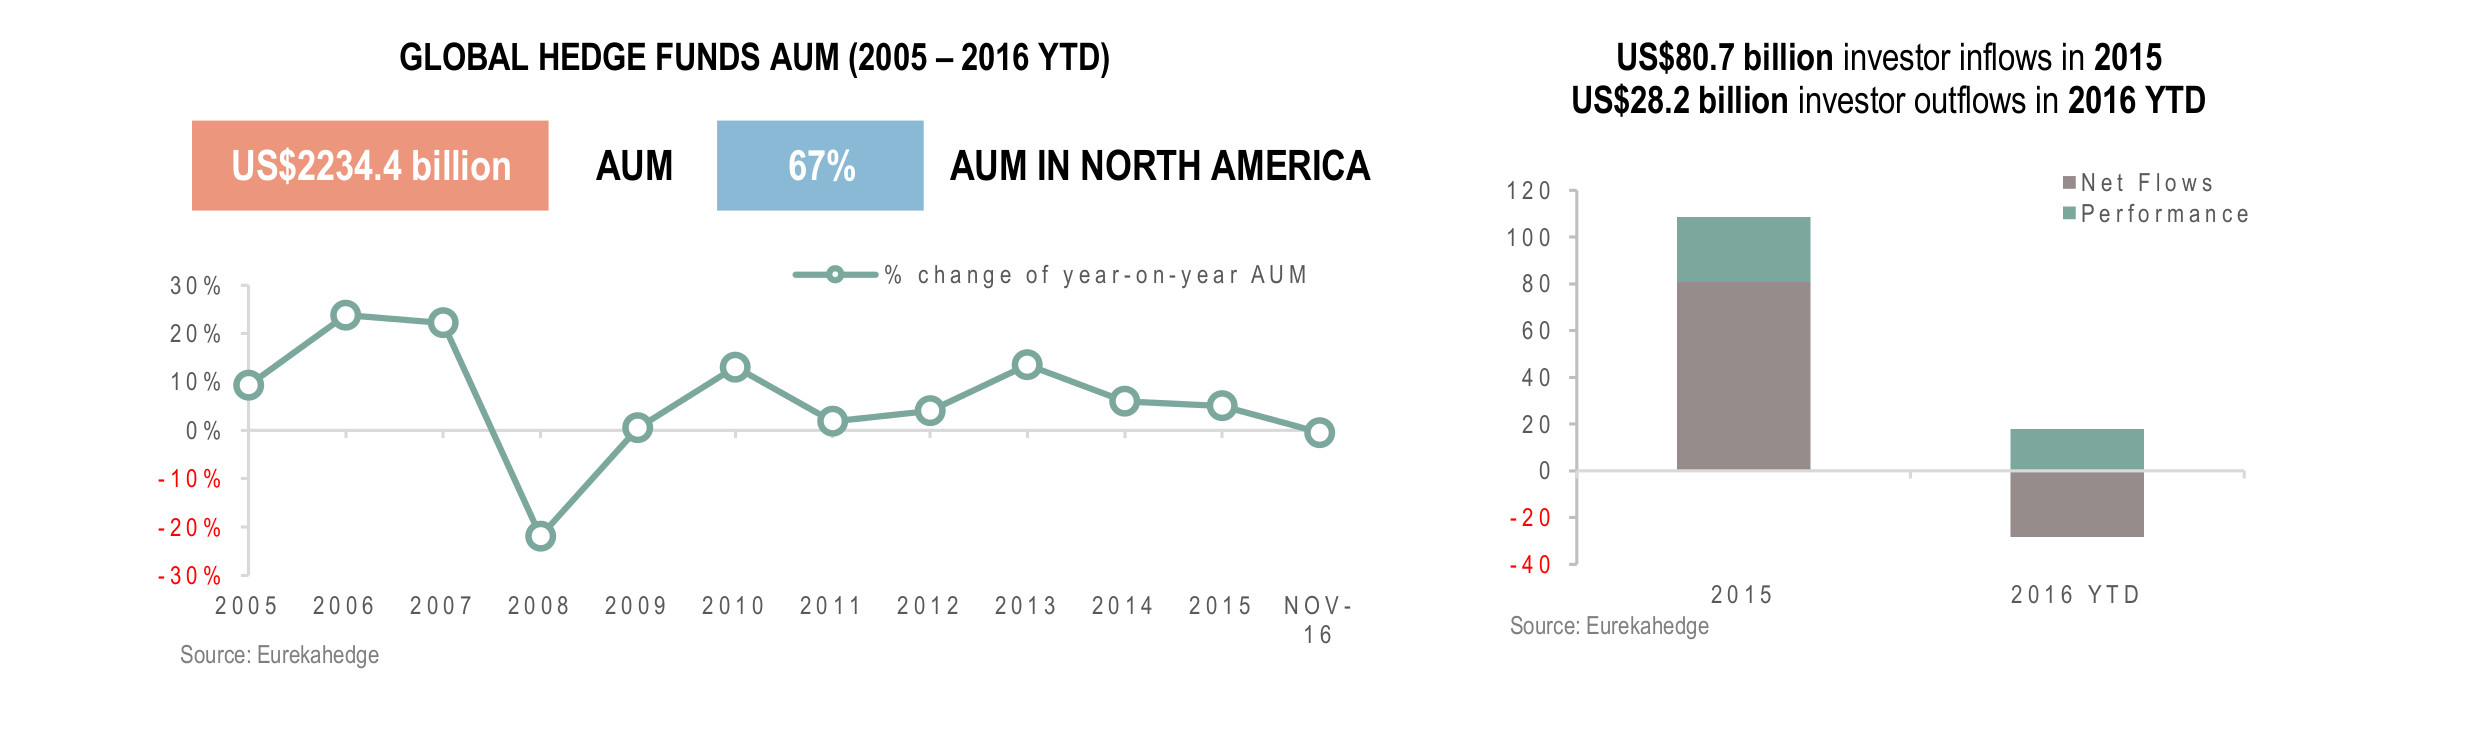 Global Hedge Funds Infographic January 2017 - Total regional AUM and investor flows